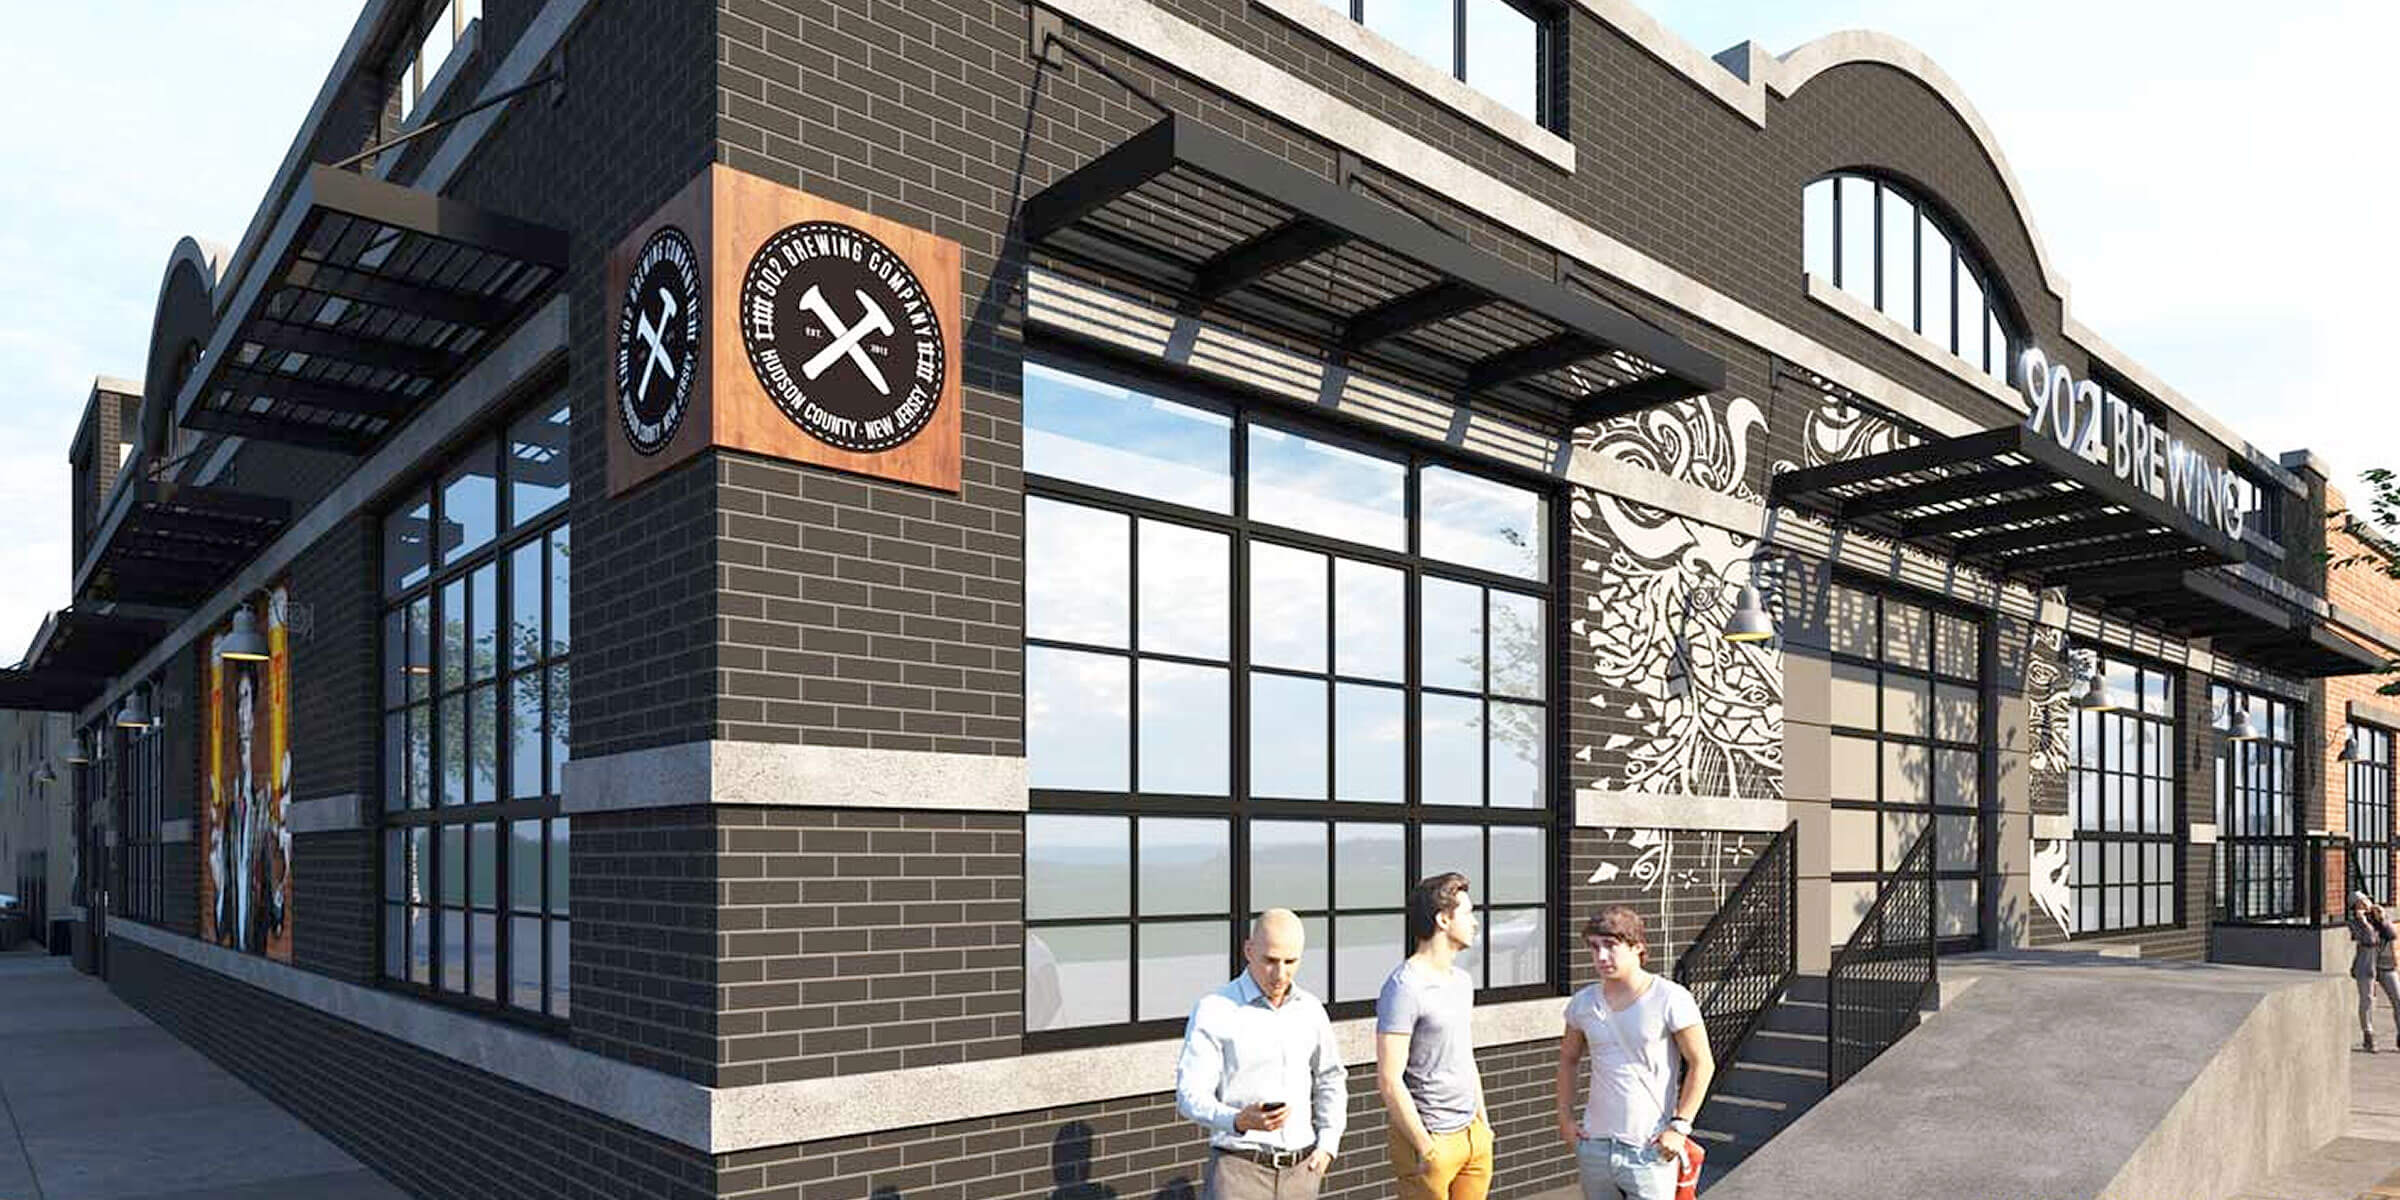 Architectural rendering of the 902 Brewing Company entrance in Jersey City, New Jersey